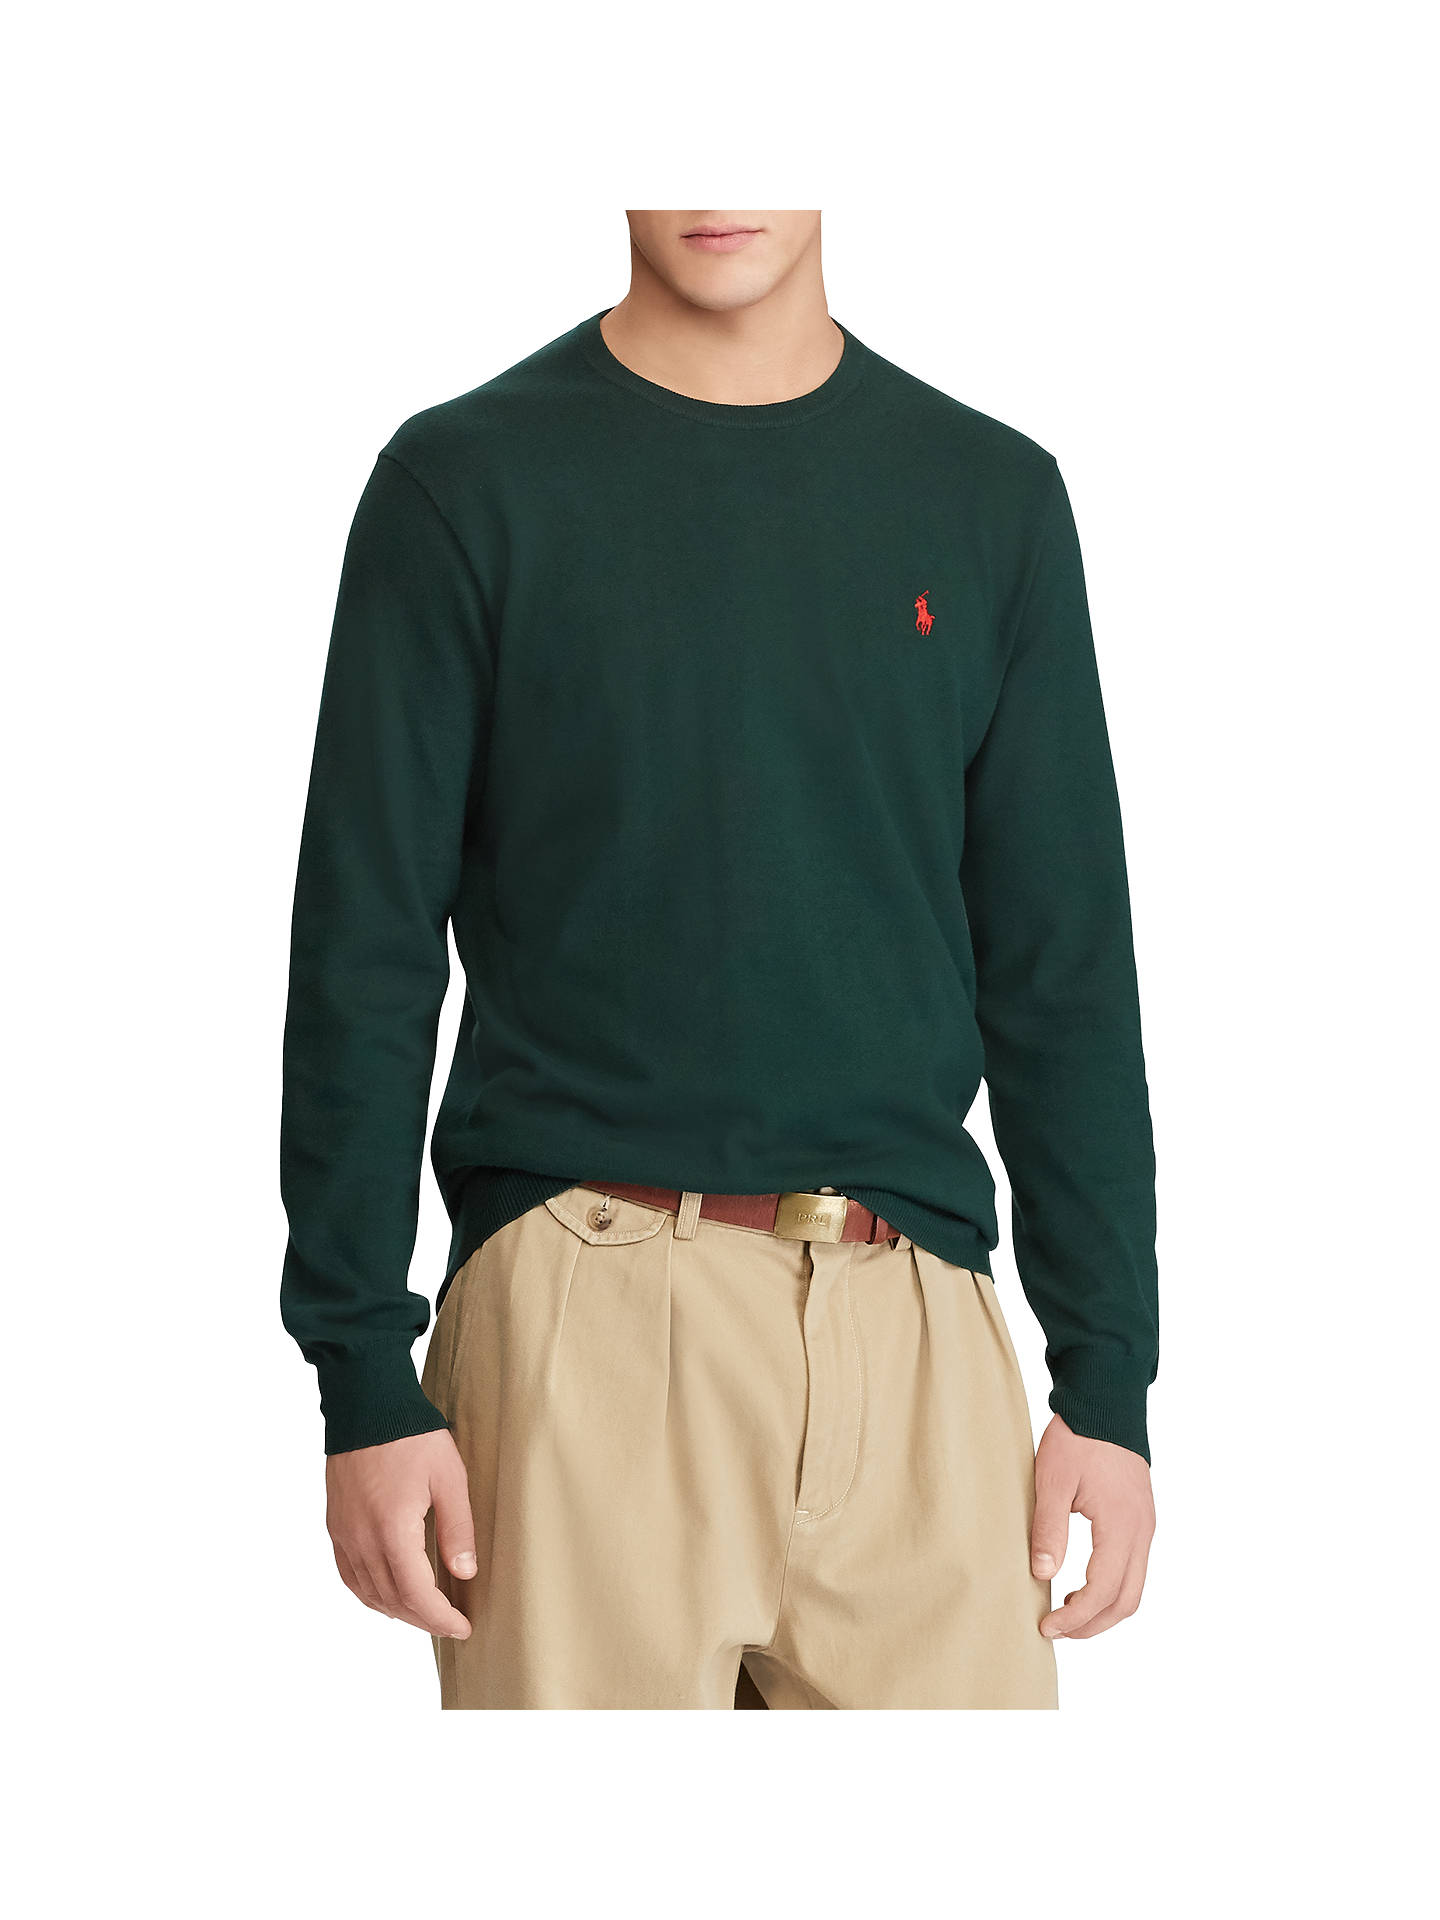 Buy Polo Ralph Lauren Slim Fit Pima Cotton Crew Neck Jumper, College Green, S Online at johnlewis.com